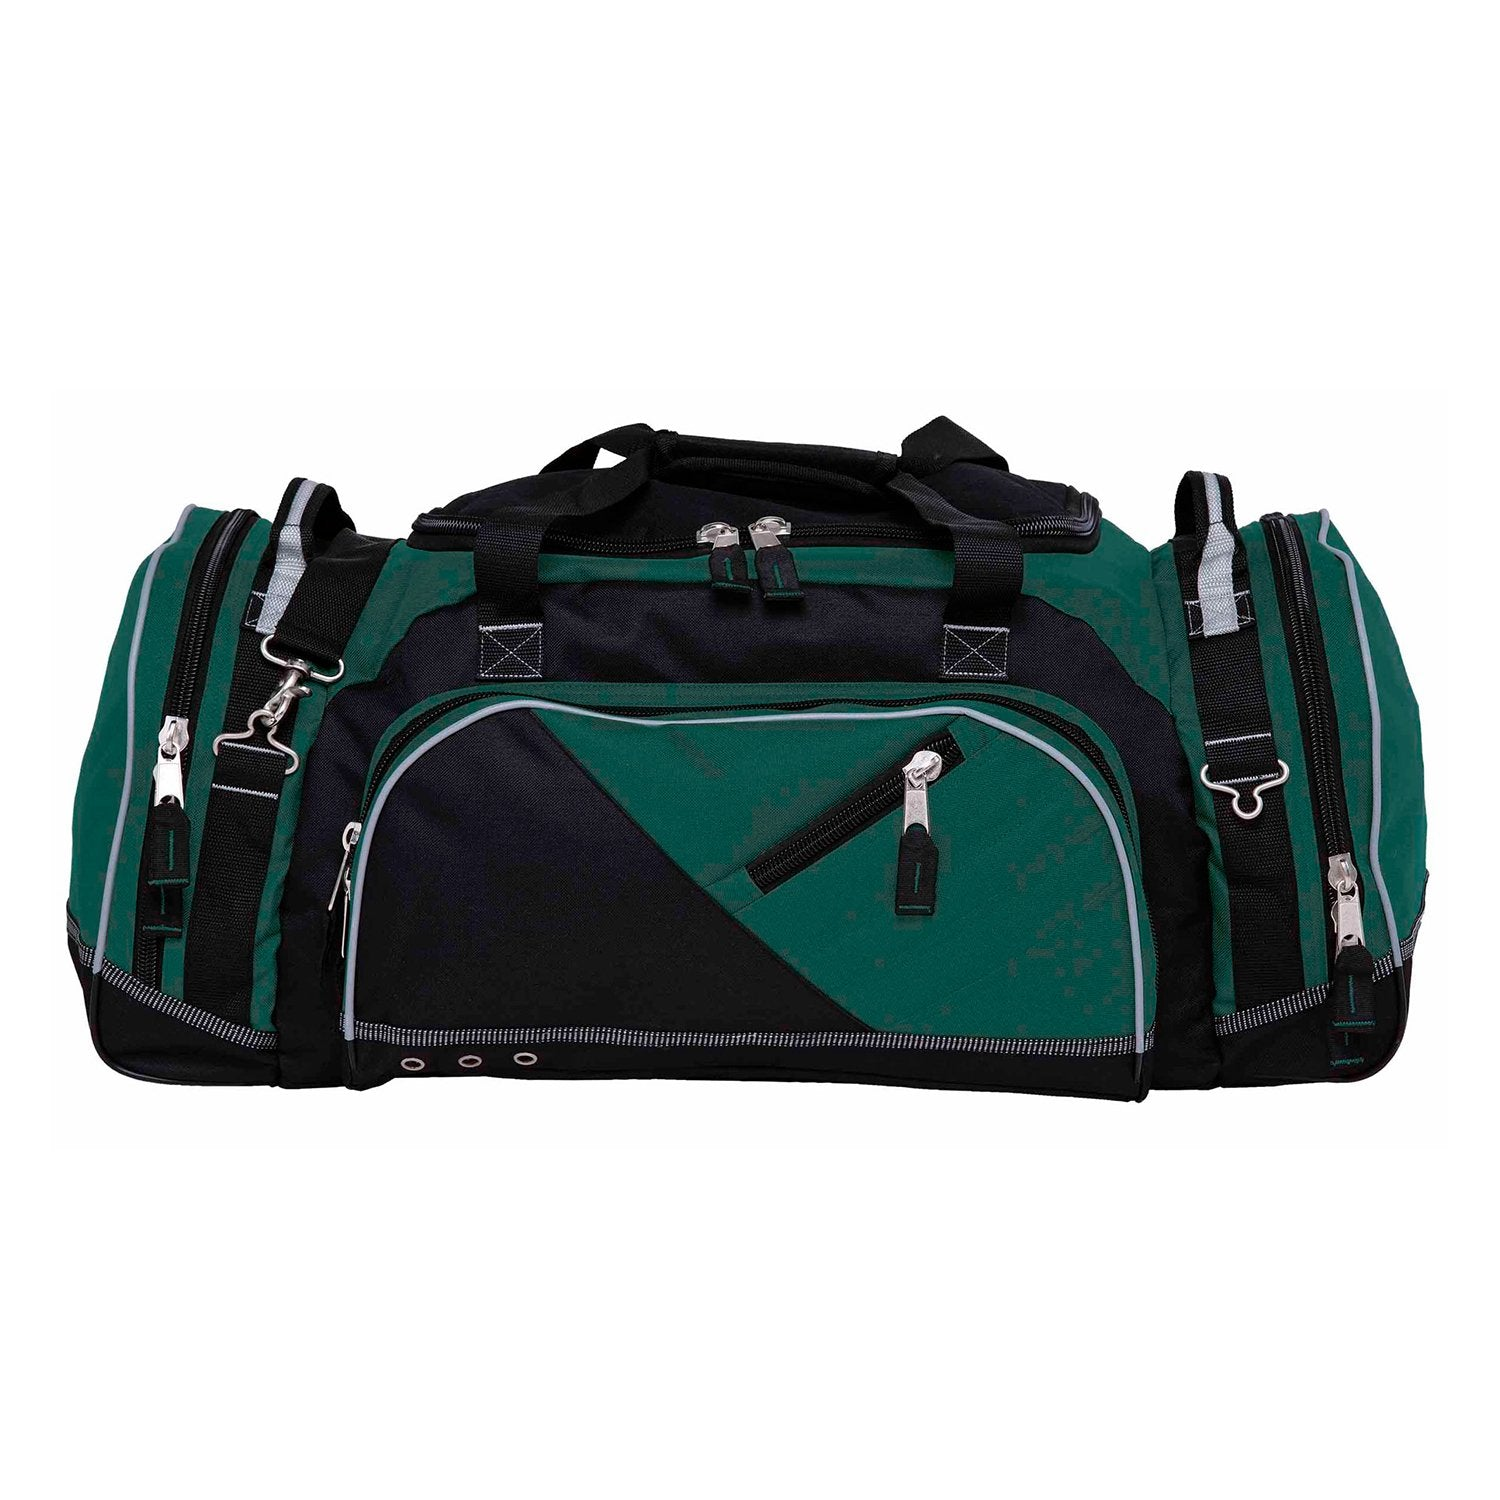 Recon Sports Kit Bag